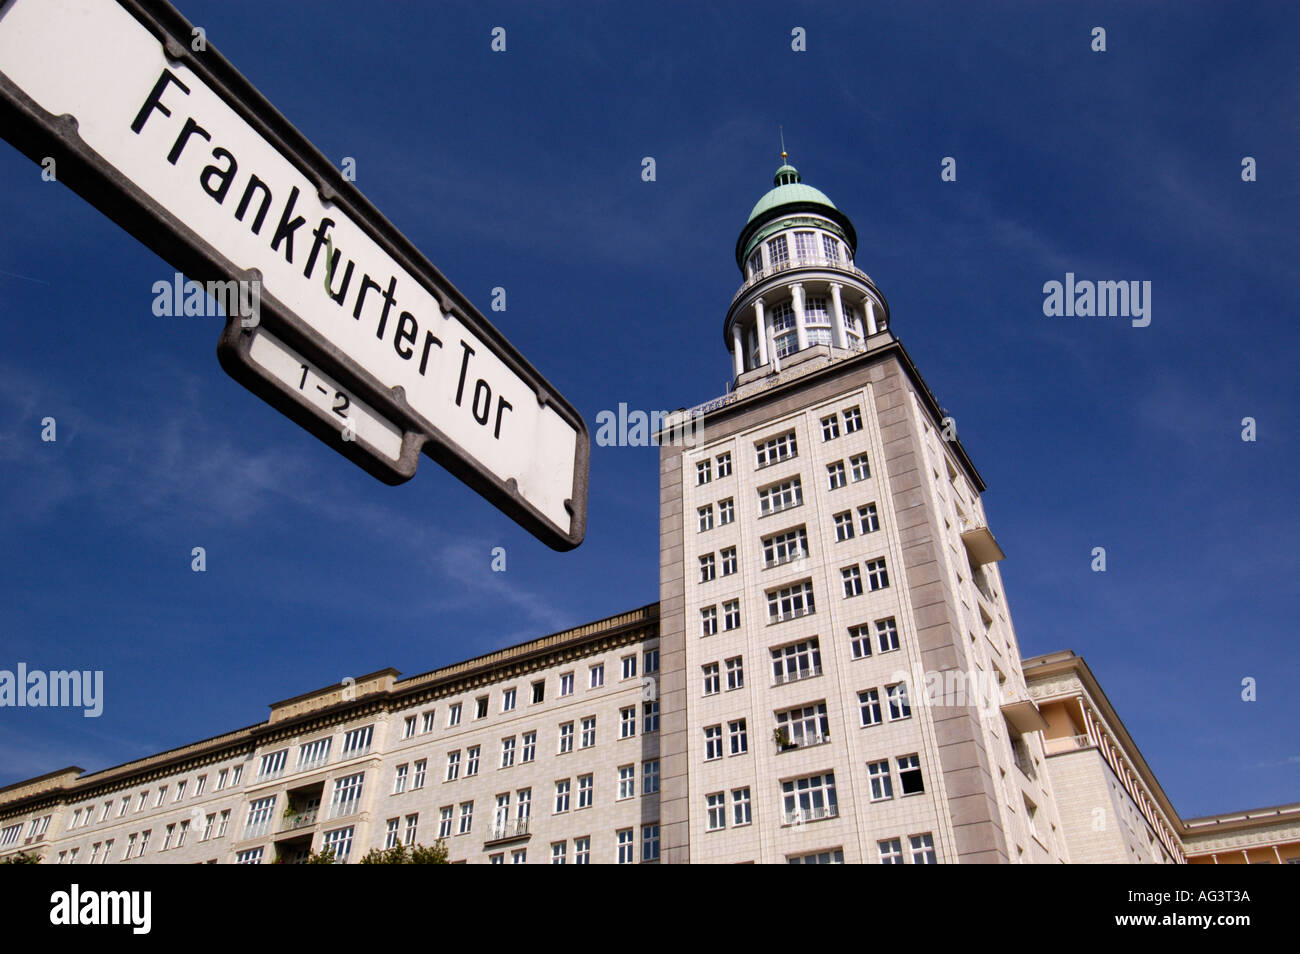 Frankfurter Tor is an example of Stalinist architecture in Karl Marx Allee in Berlin 2005 Stock Photo